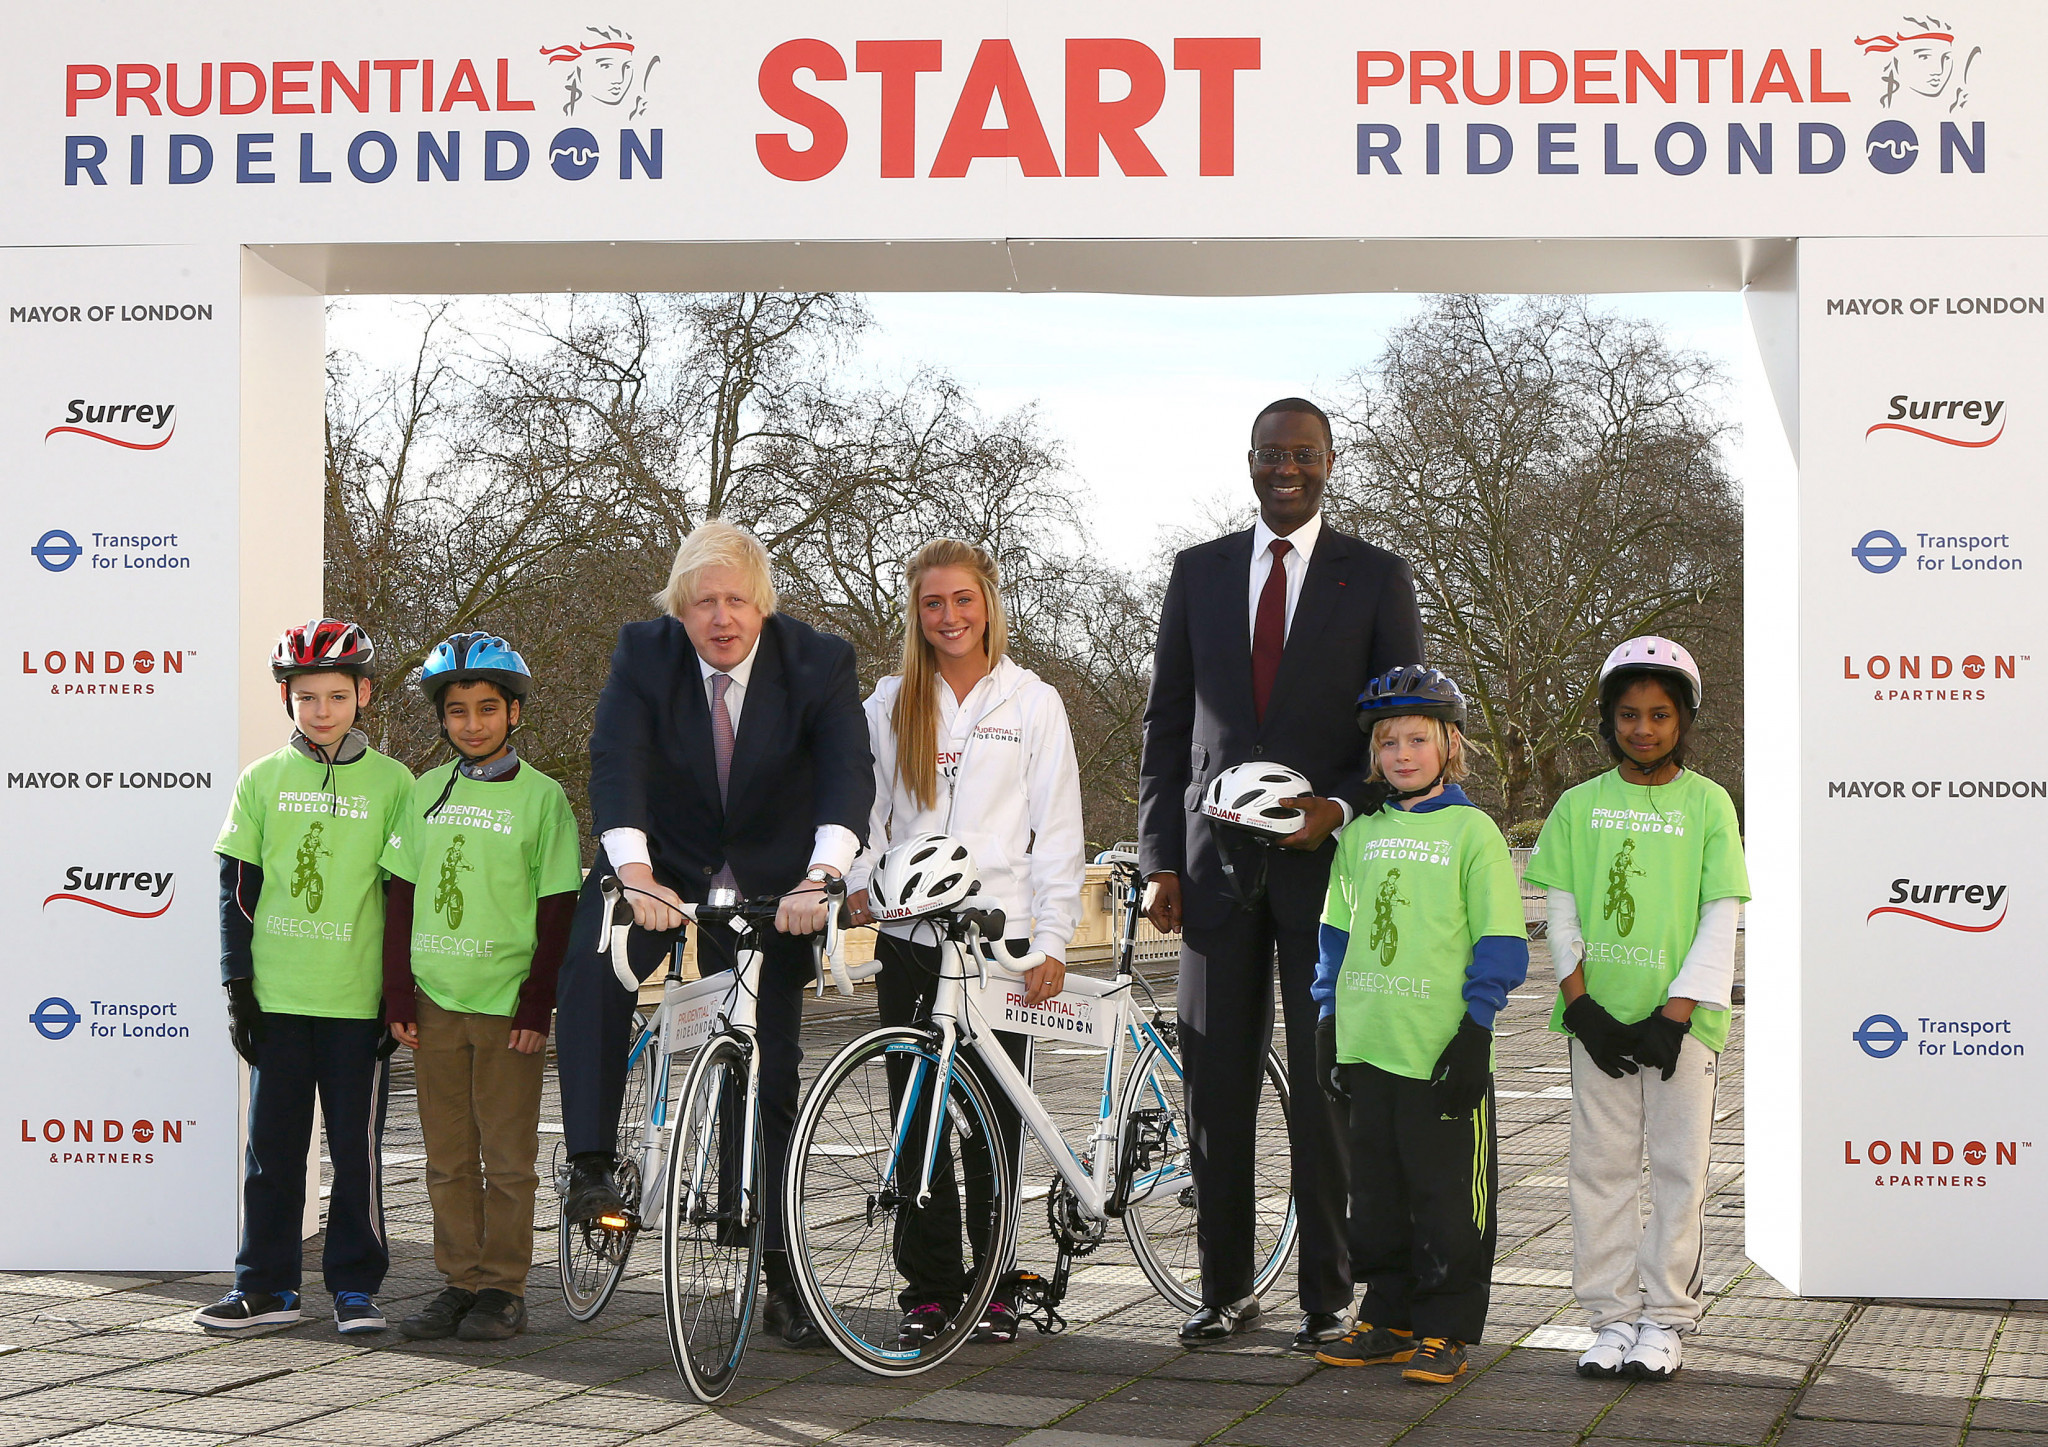 Tidjane Thiam, third right, had previously worked for British insurance company Prudential, sponsors of the RideLondon cycle event, which then London Mayor Boris Johnson, third left, helped launch ©Getty Images